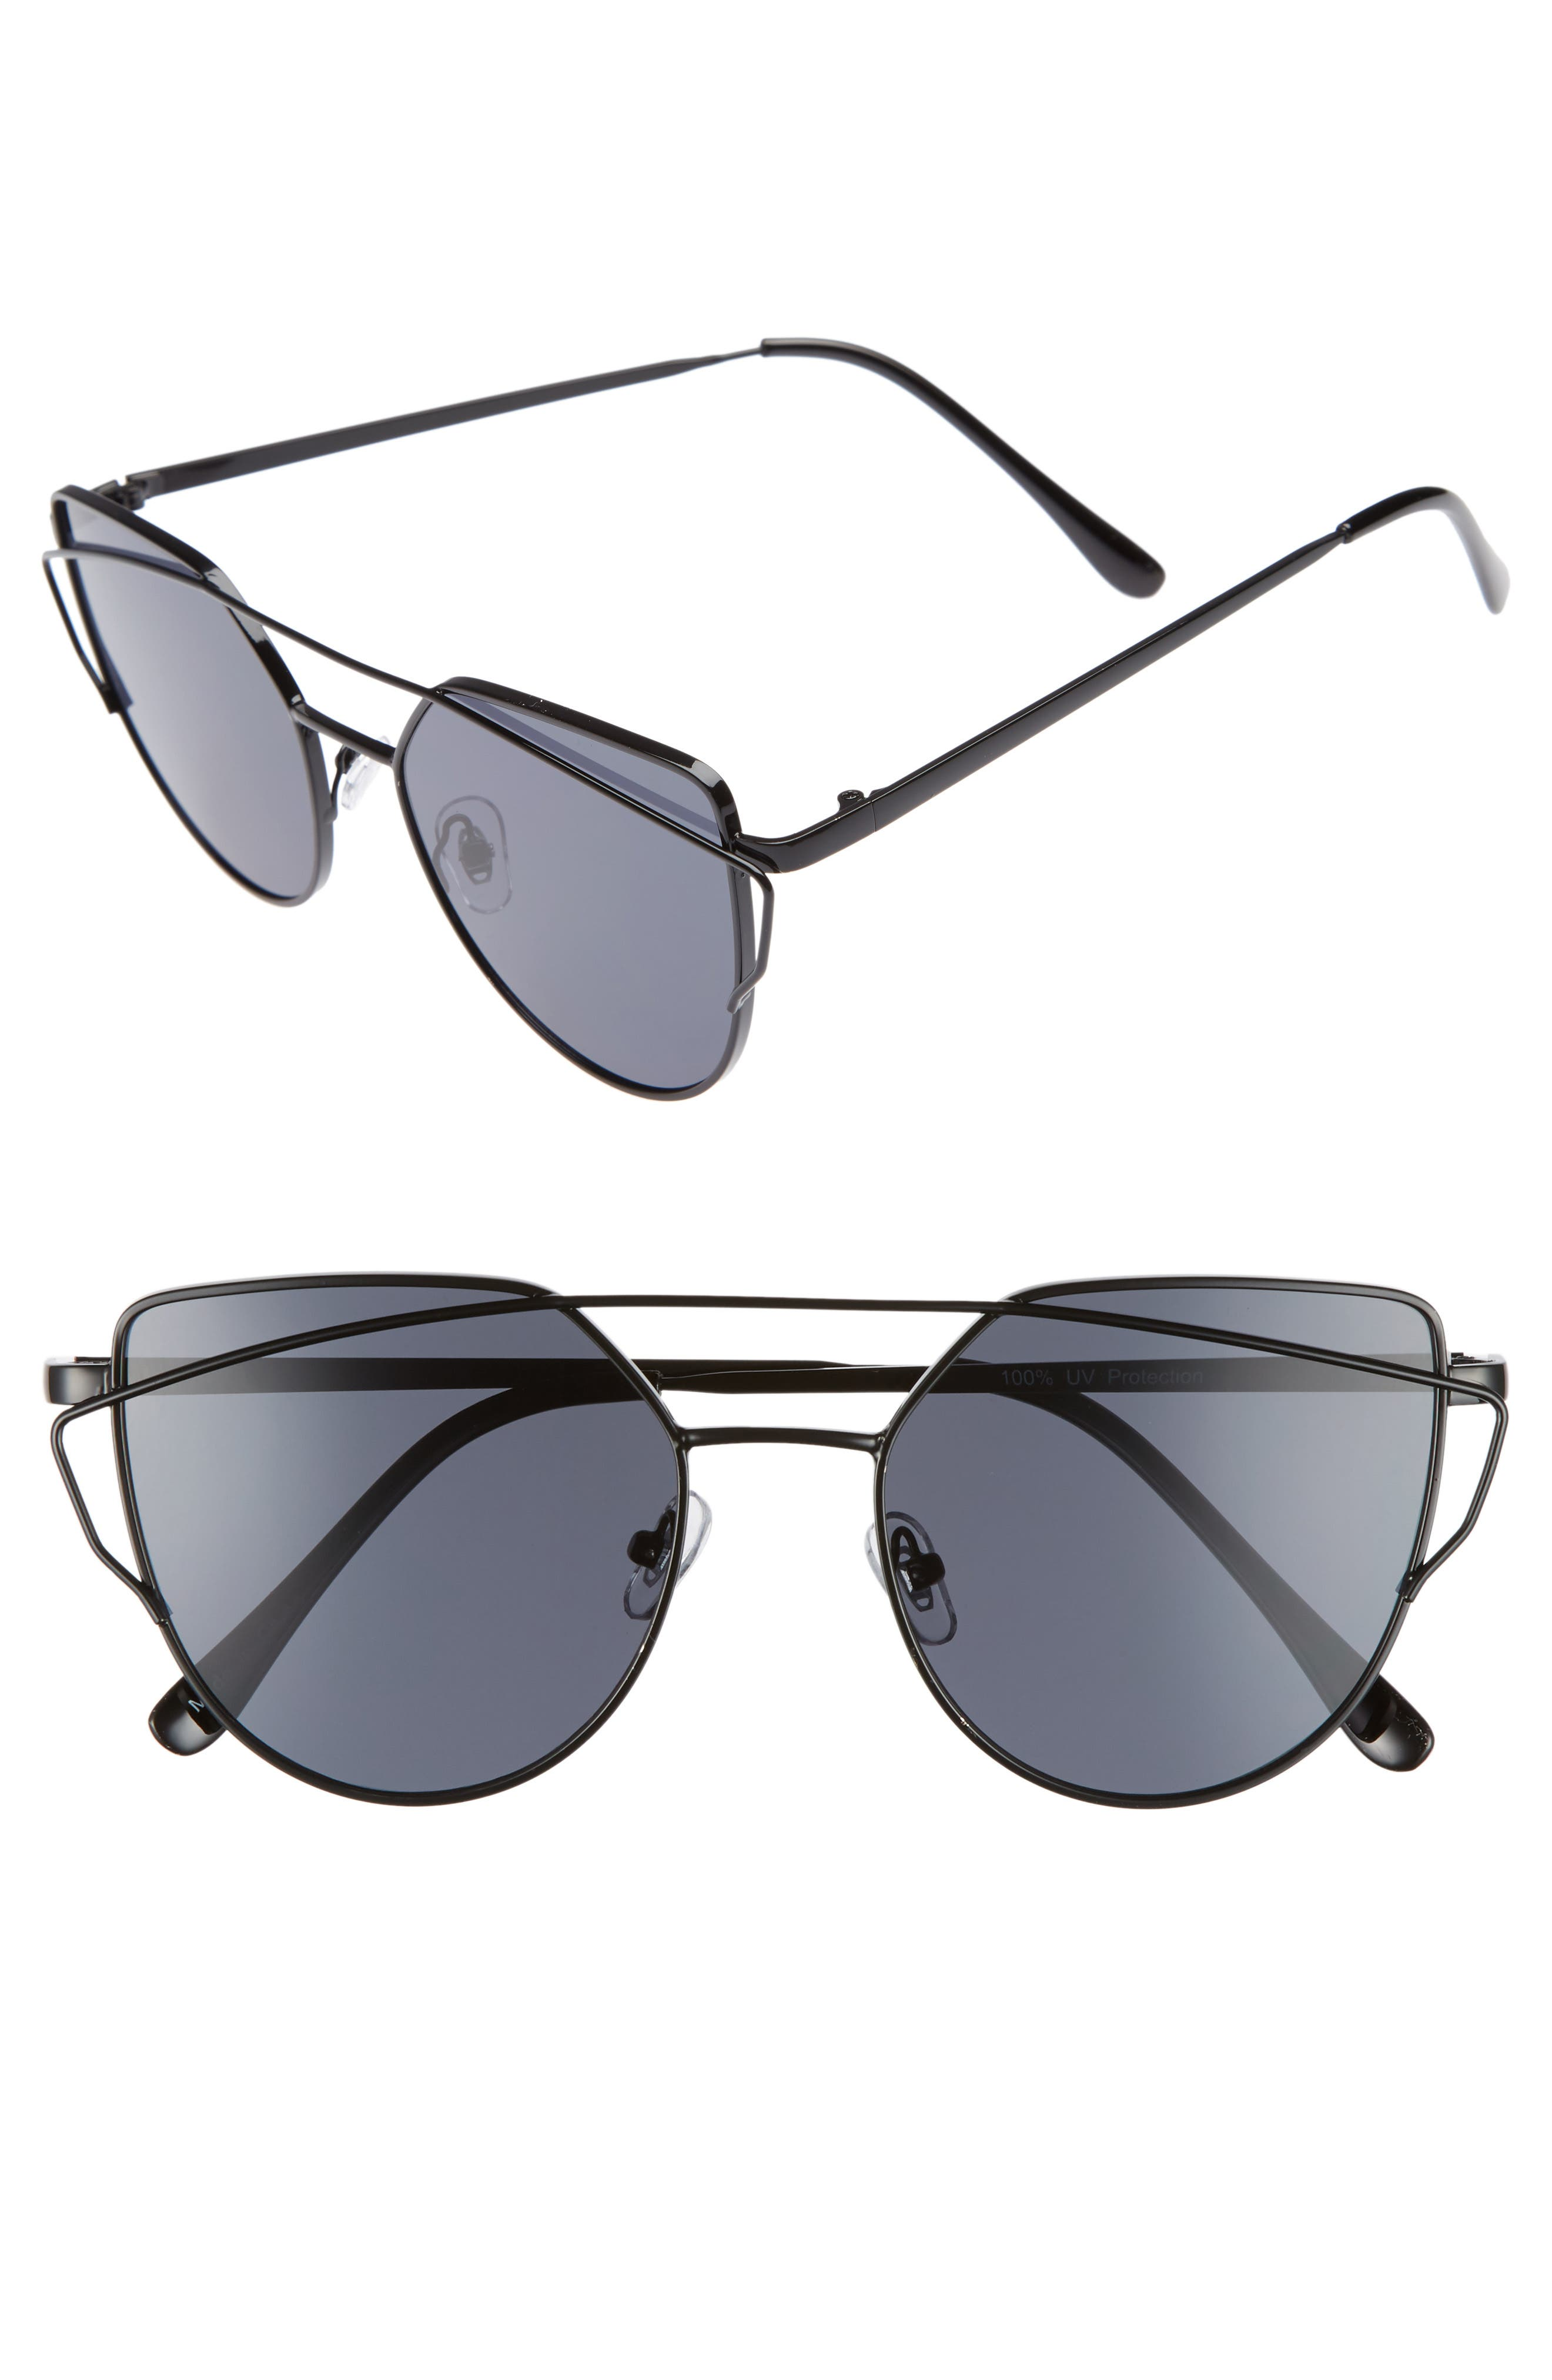 51mm Thin Brow Angular Aviator Sunglasses,                             Main thumbnail 1, color,                             Black/ Black